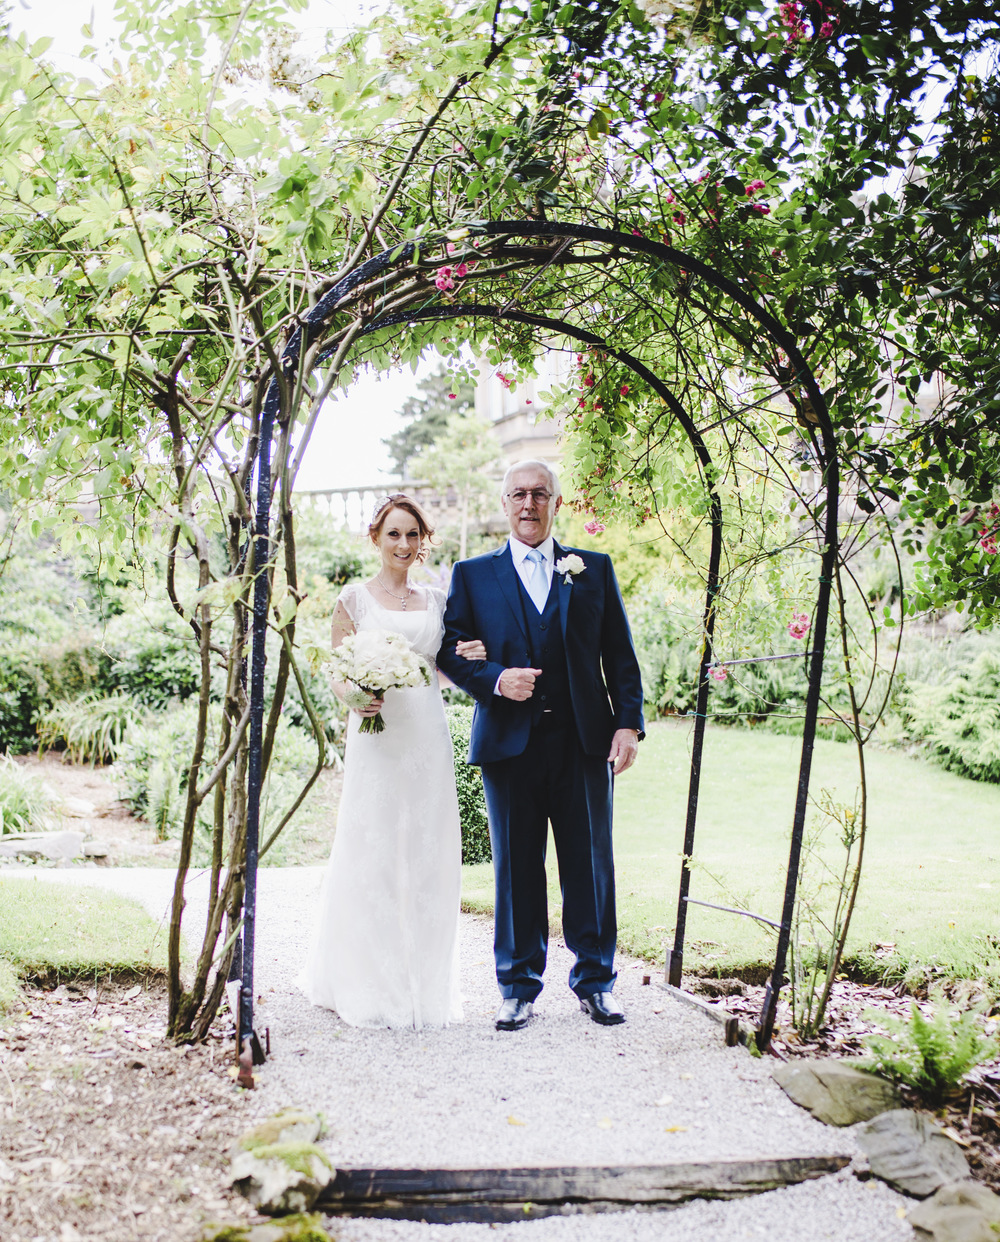 The bride and her father walking up to the wedding venue- Creative wedding photographer